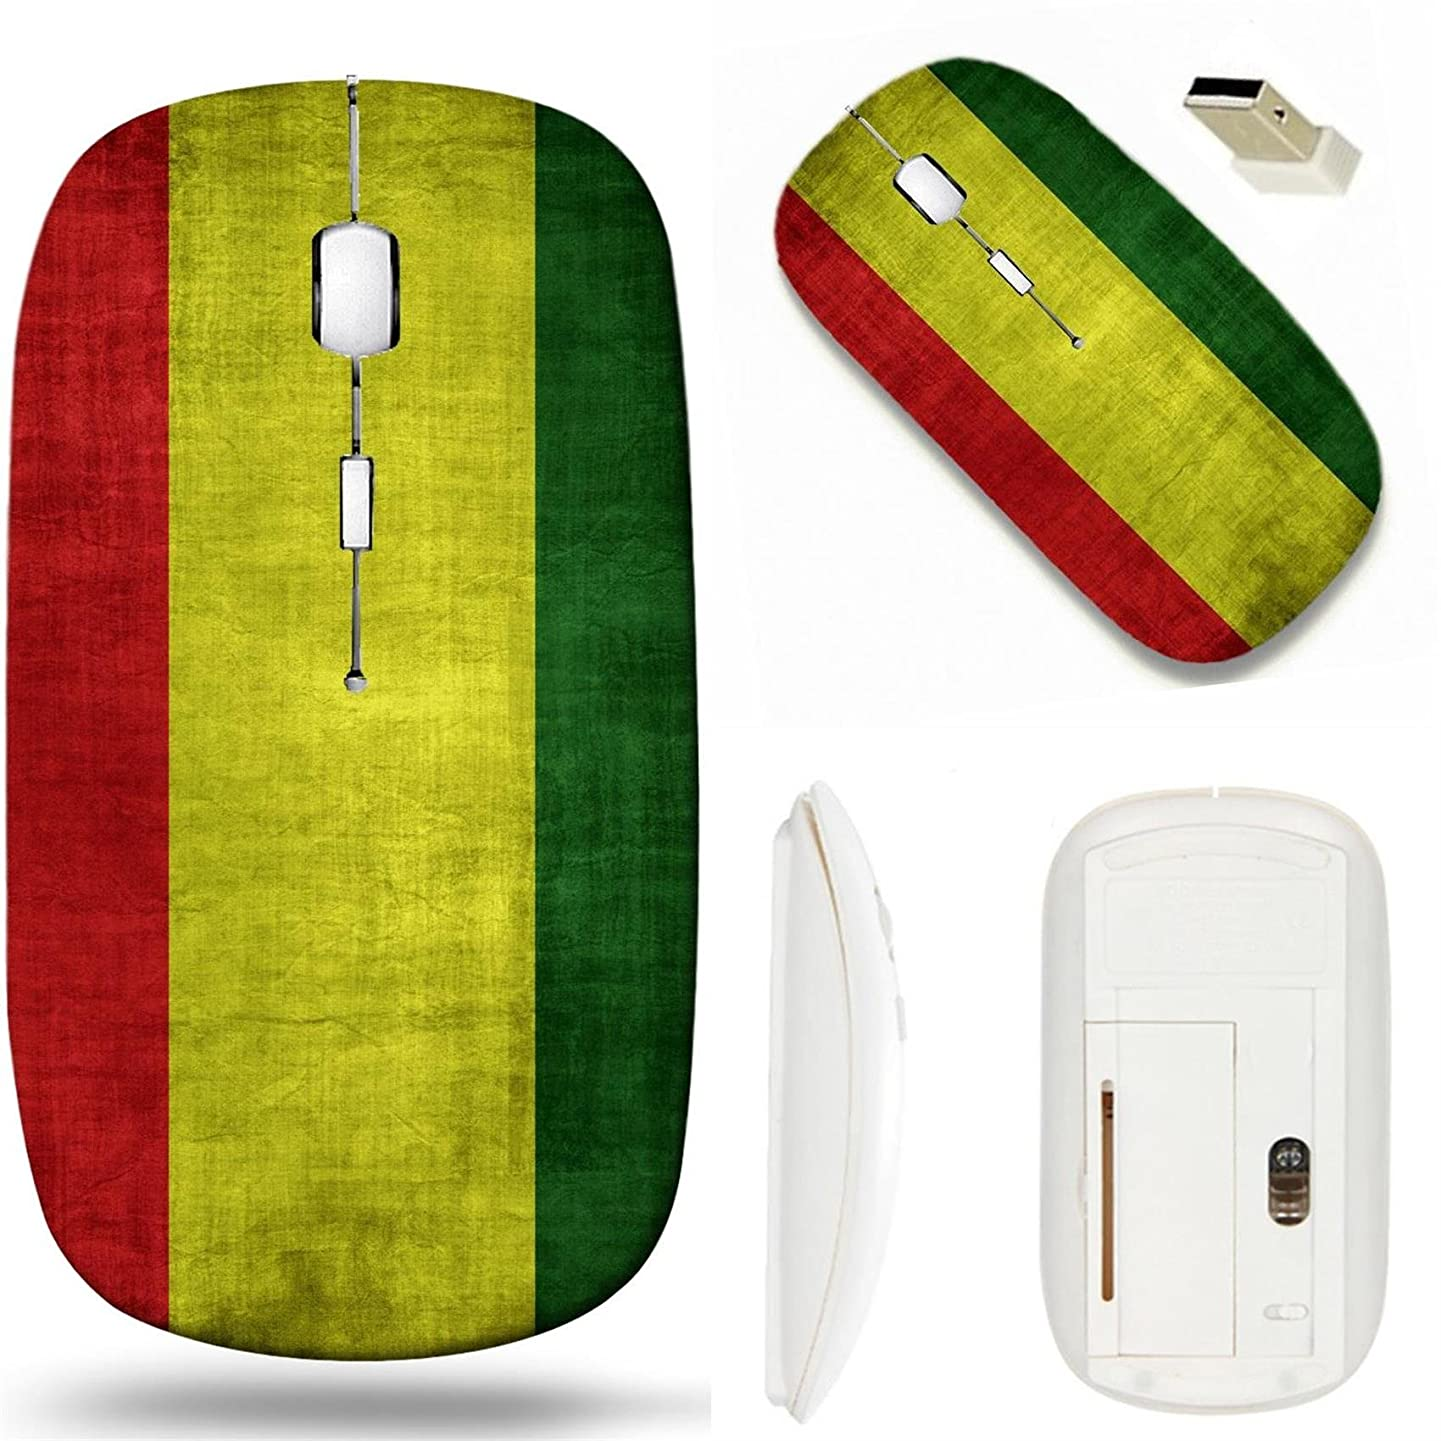 MSD Wireless Mouse White Base Travel 2.4G Wireless Mice with USB Receiver, Noiseless and Silent Click with 1000 DPI for notebook, pc, laptop, computer, mac book design 35334822 Rasta flag pattern retr